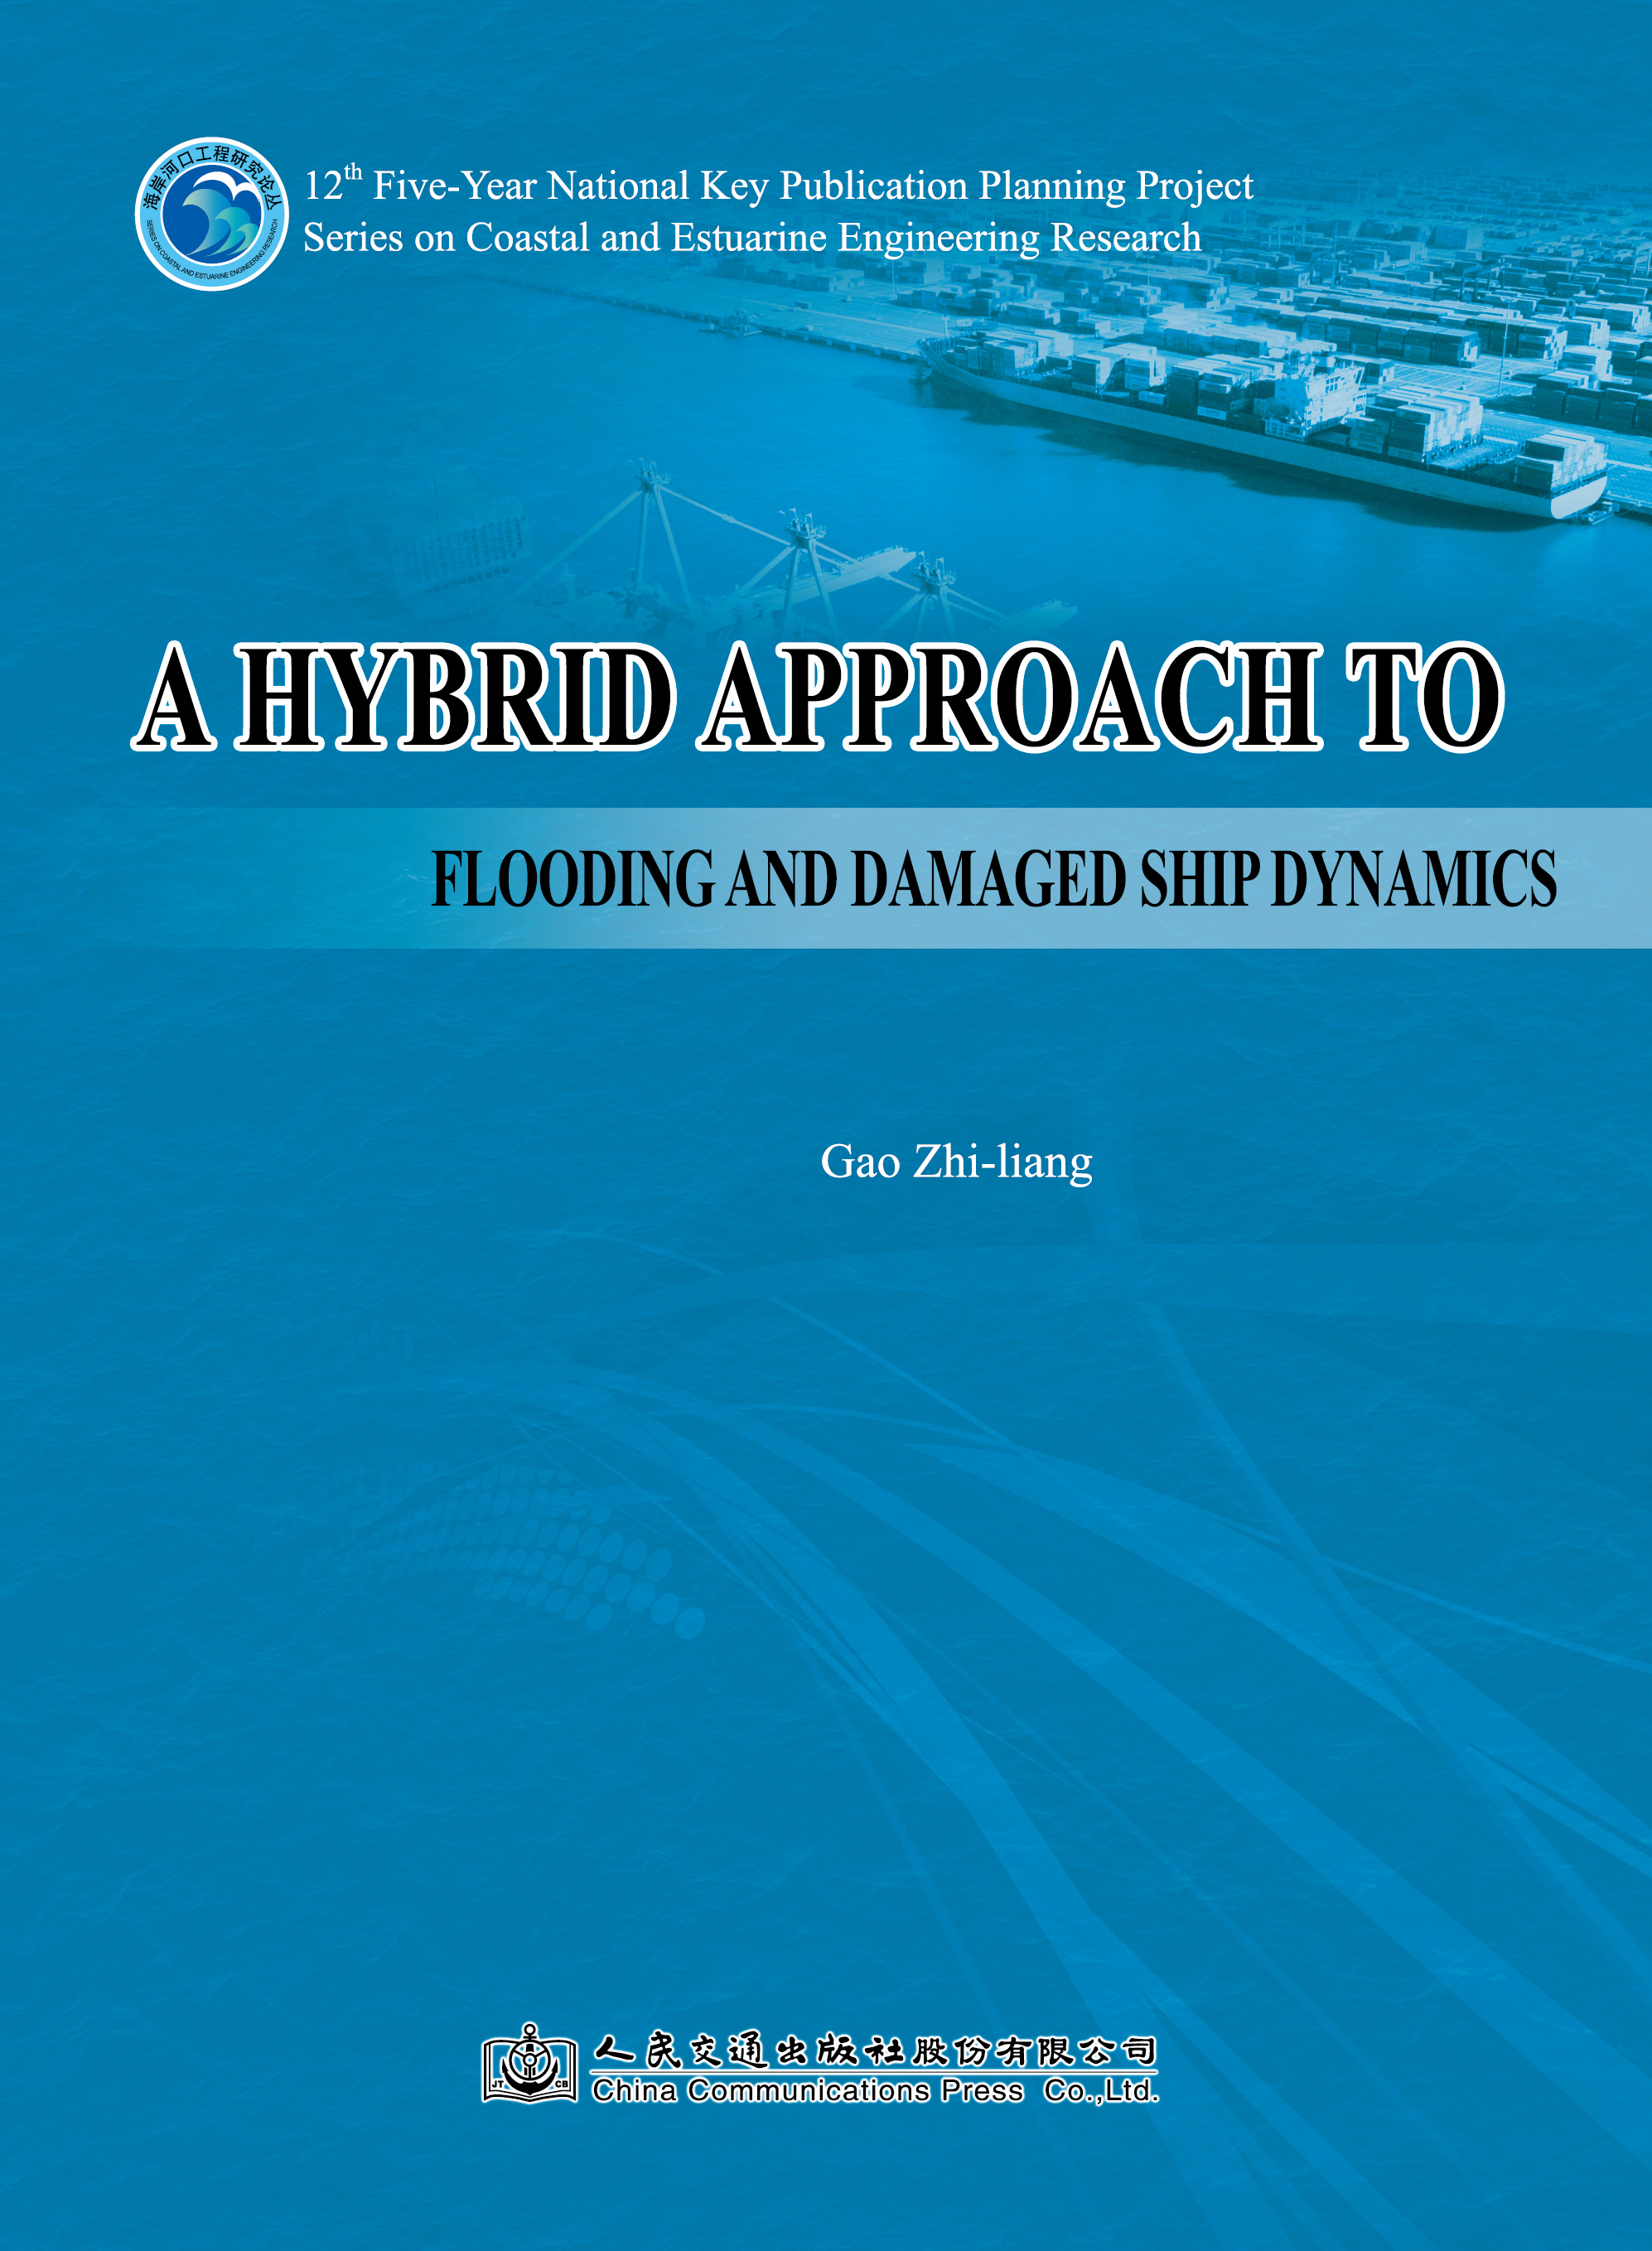 A Hybrid Approach to Flooding and Damaged Ship Dynamics